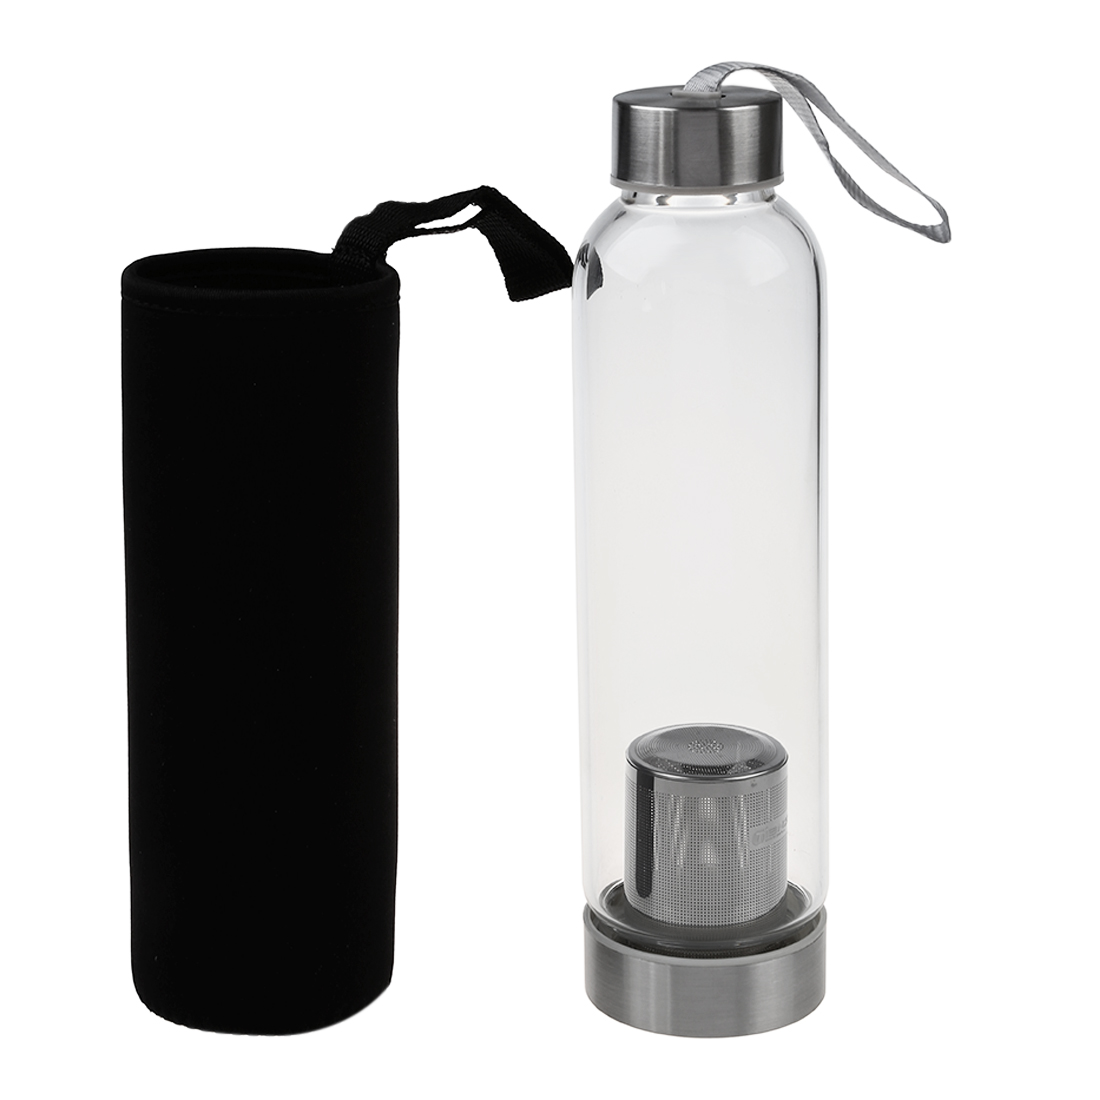 HOT-Glass Sport Water Bottle with Tea Filter Infuser Protective Bag 550ml 2